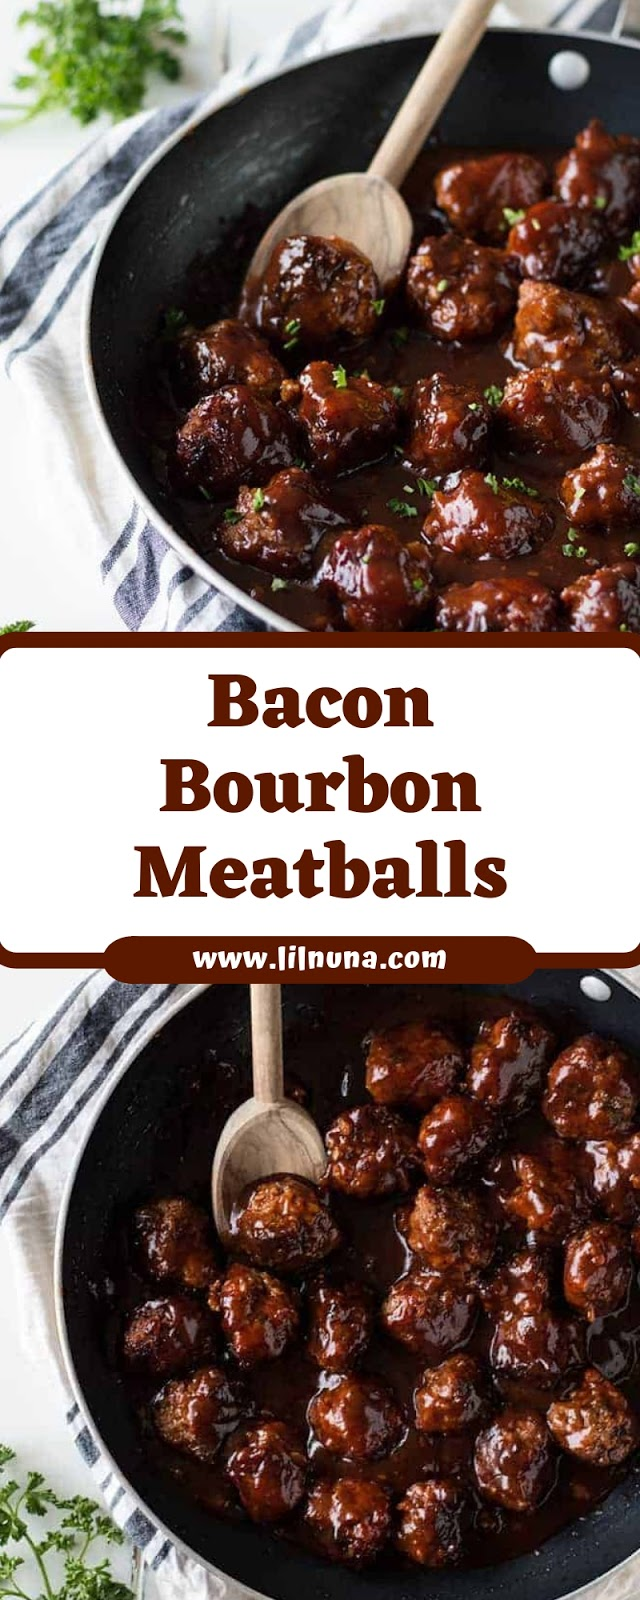 Bacon Bourbon Meatballs